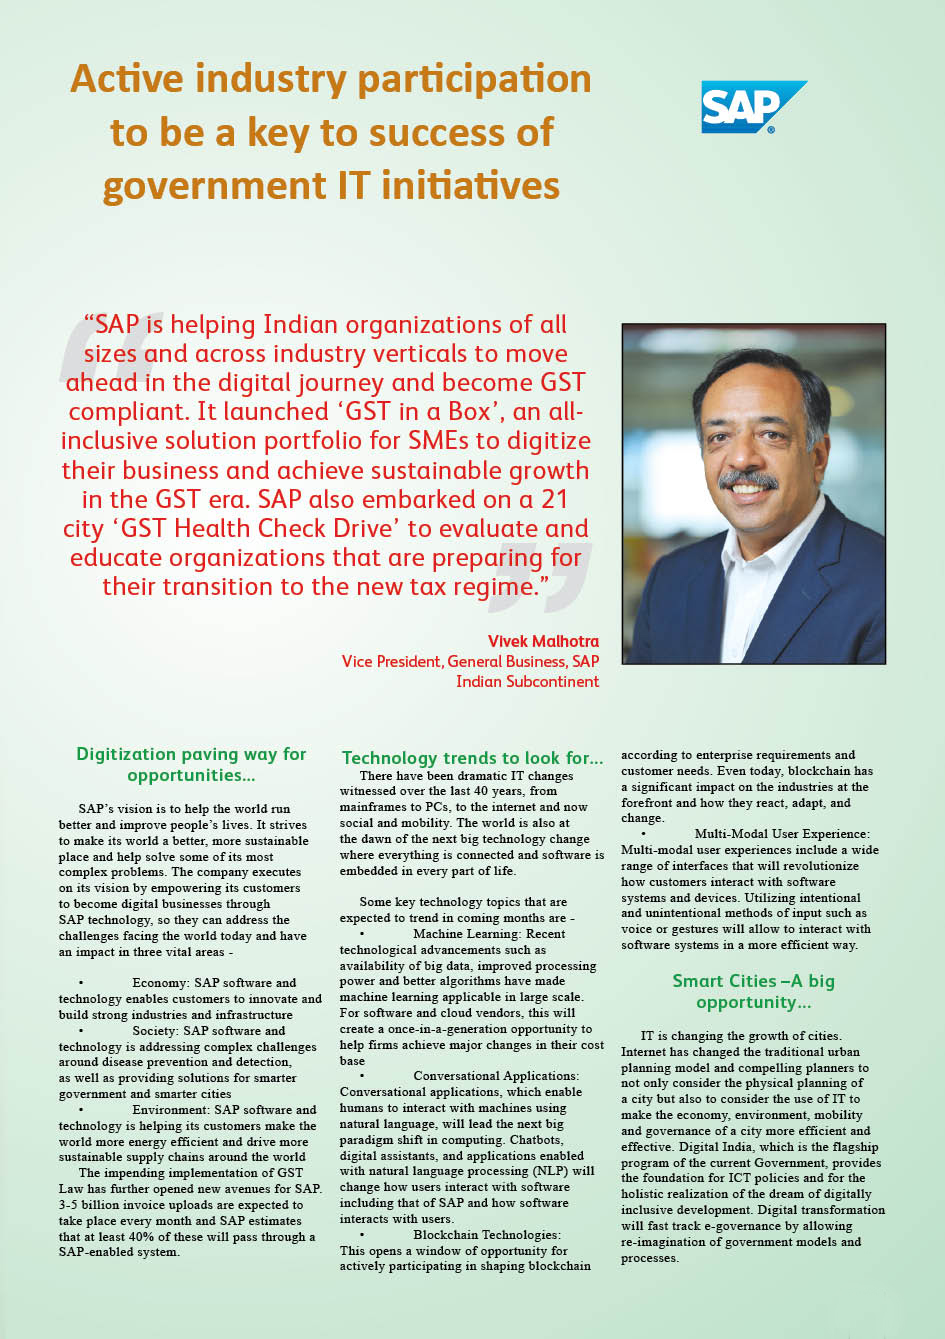 SAP India : Active industry participation to be a key to success of government IT initiatives